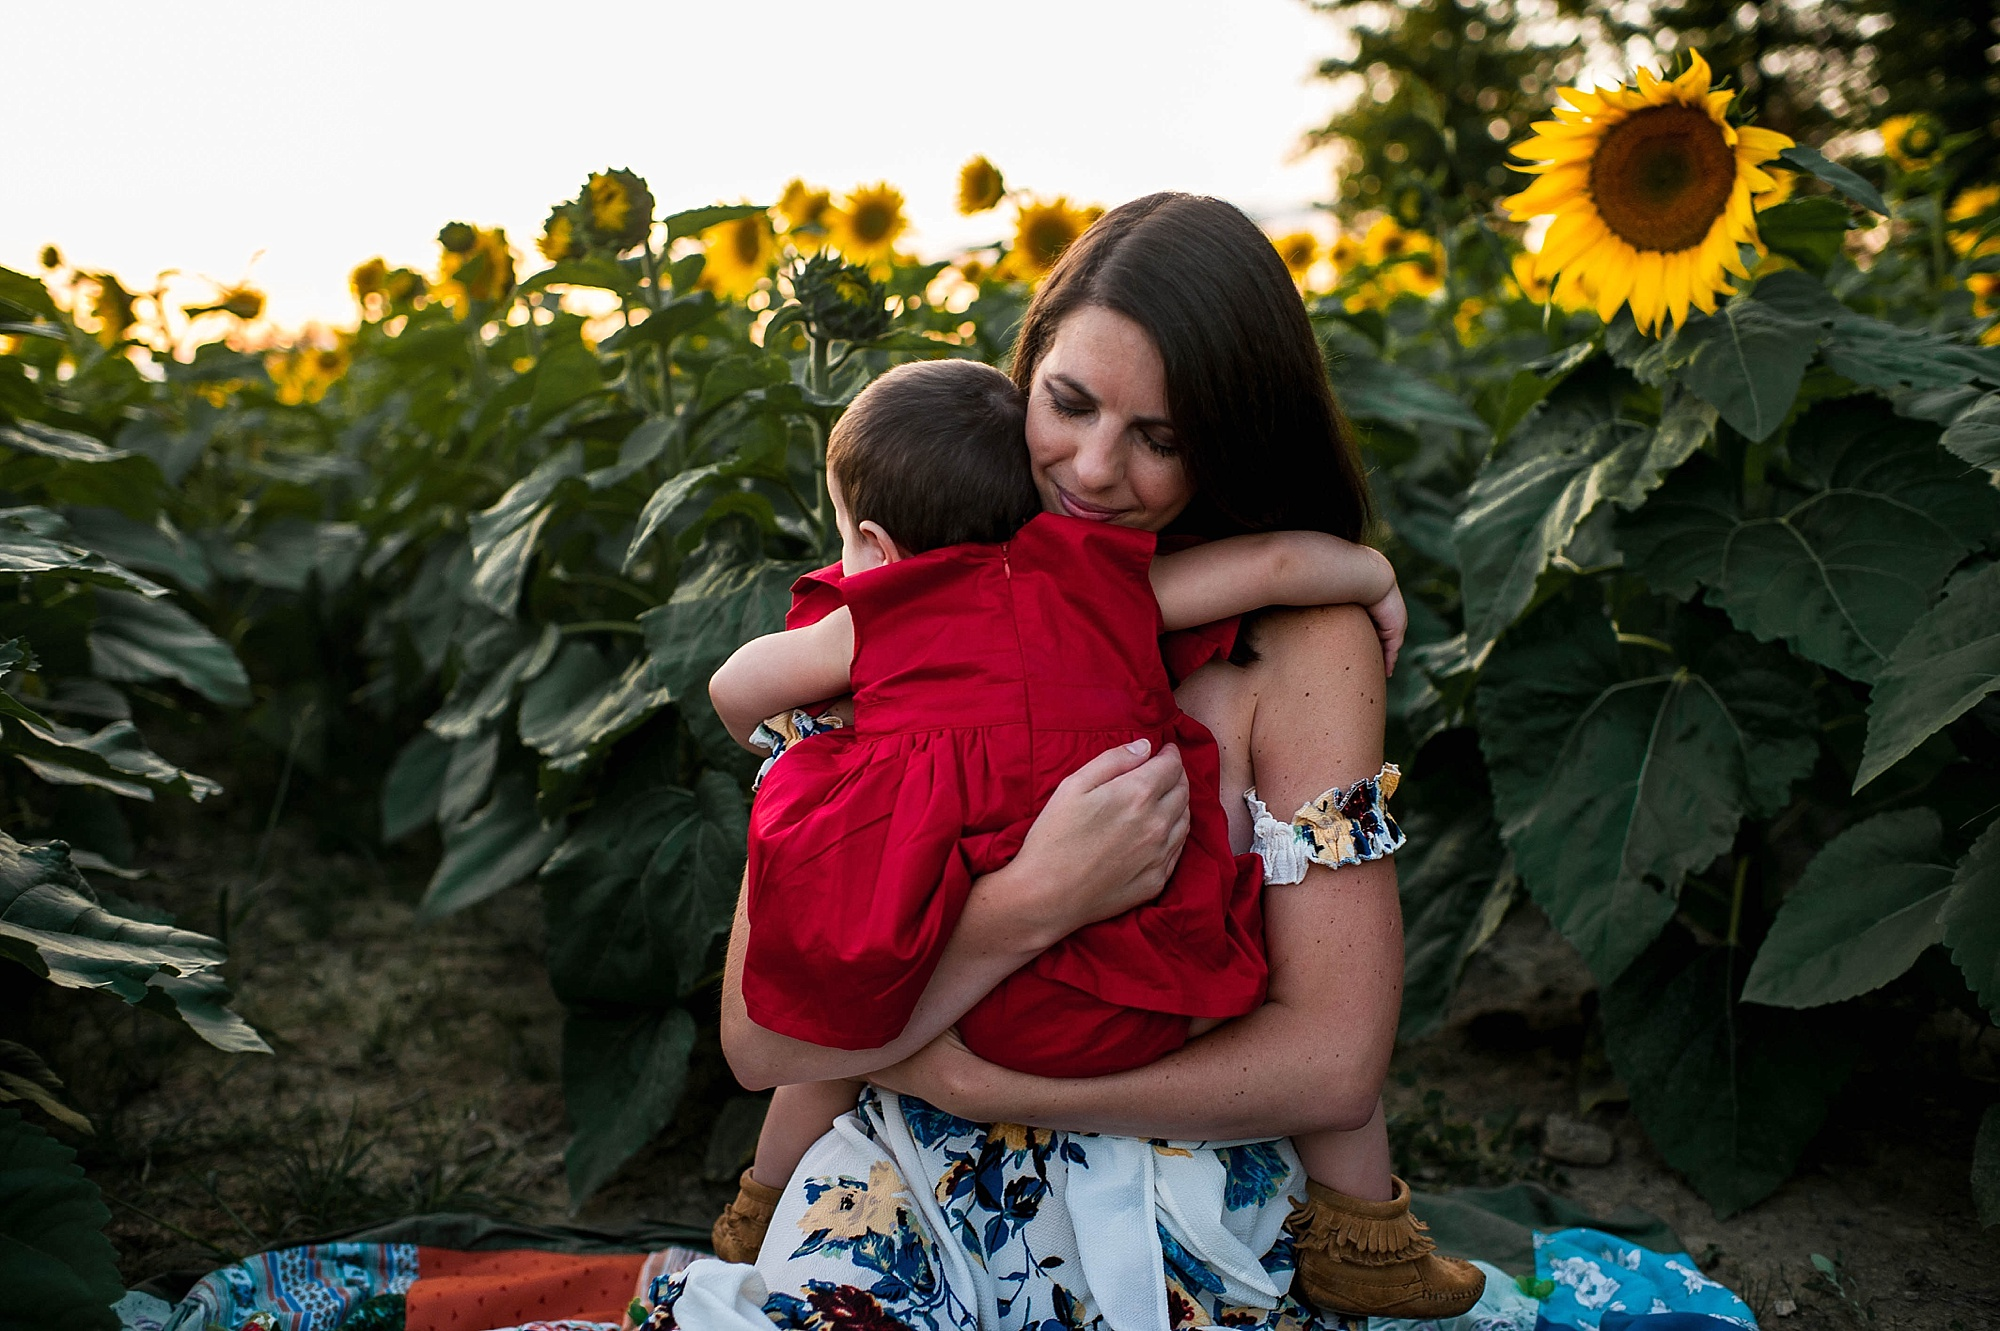 lauren-grayson-photography-cleveland-ohio-photographer-sunflower-fields-sunset-golden-hour-photo-shoot-mommy-and-me-family-child-photographer_0572.jpg